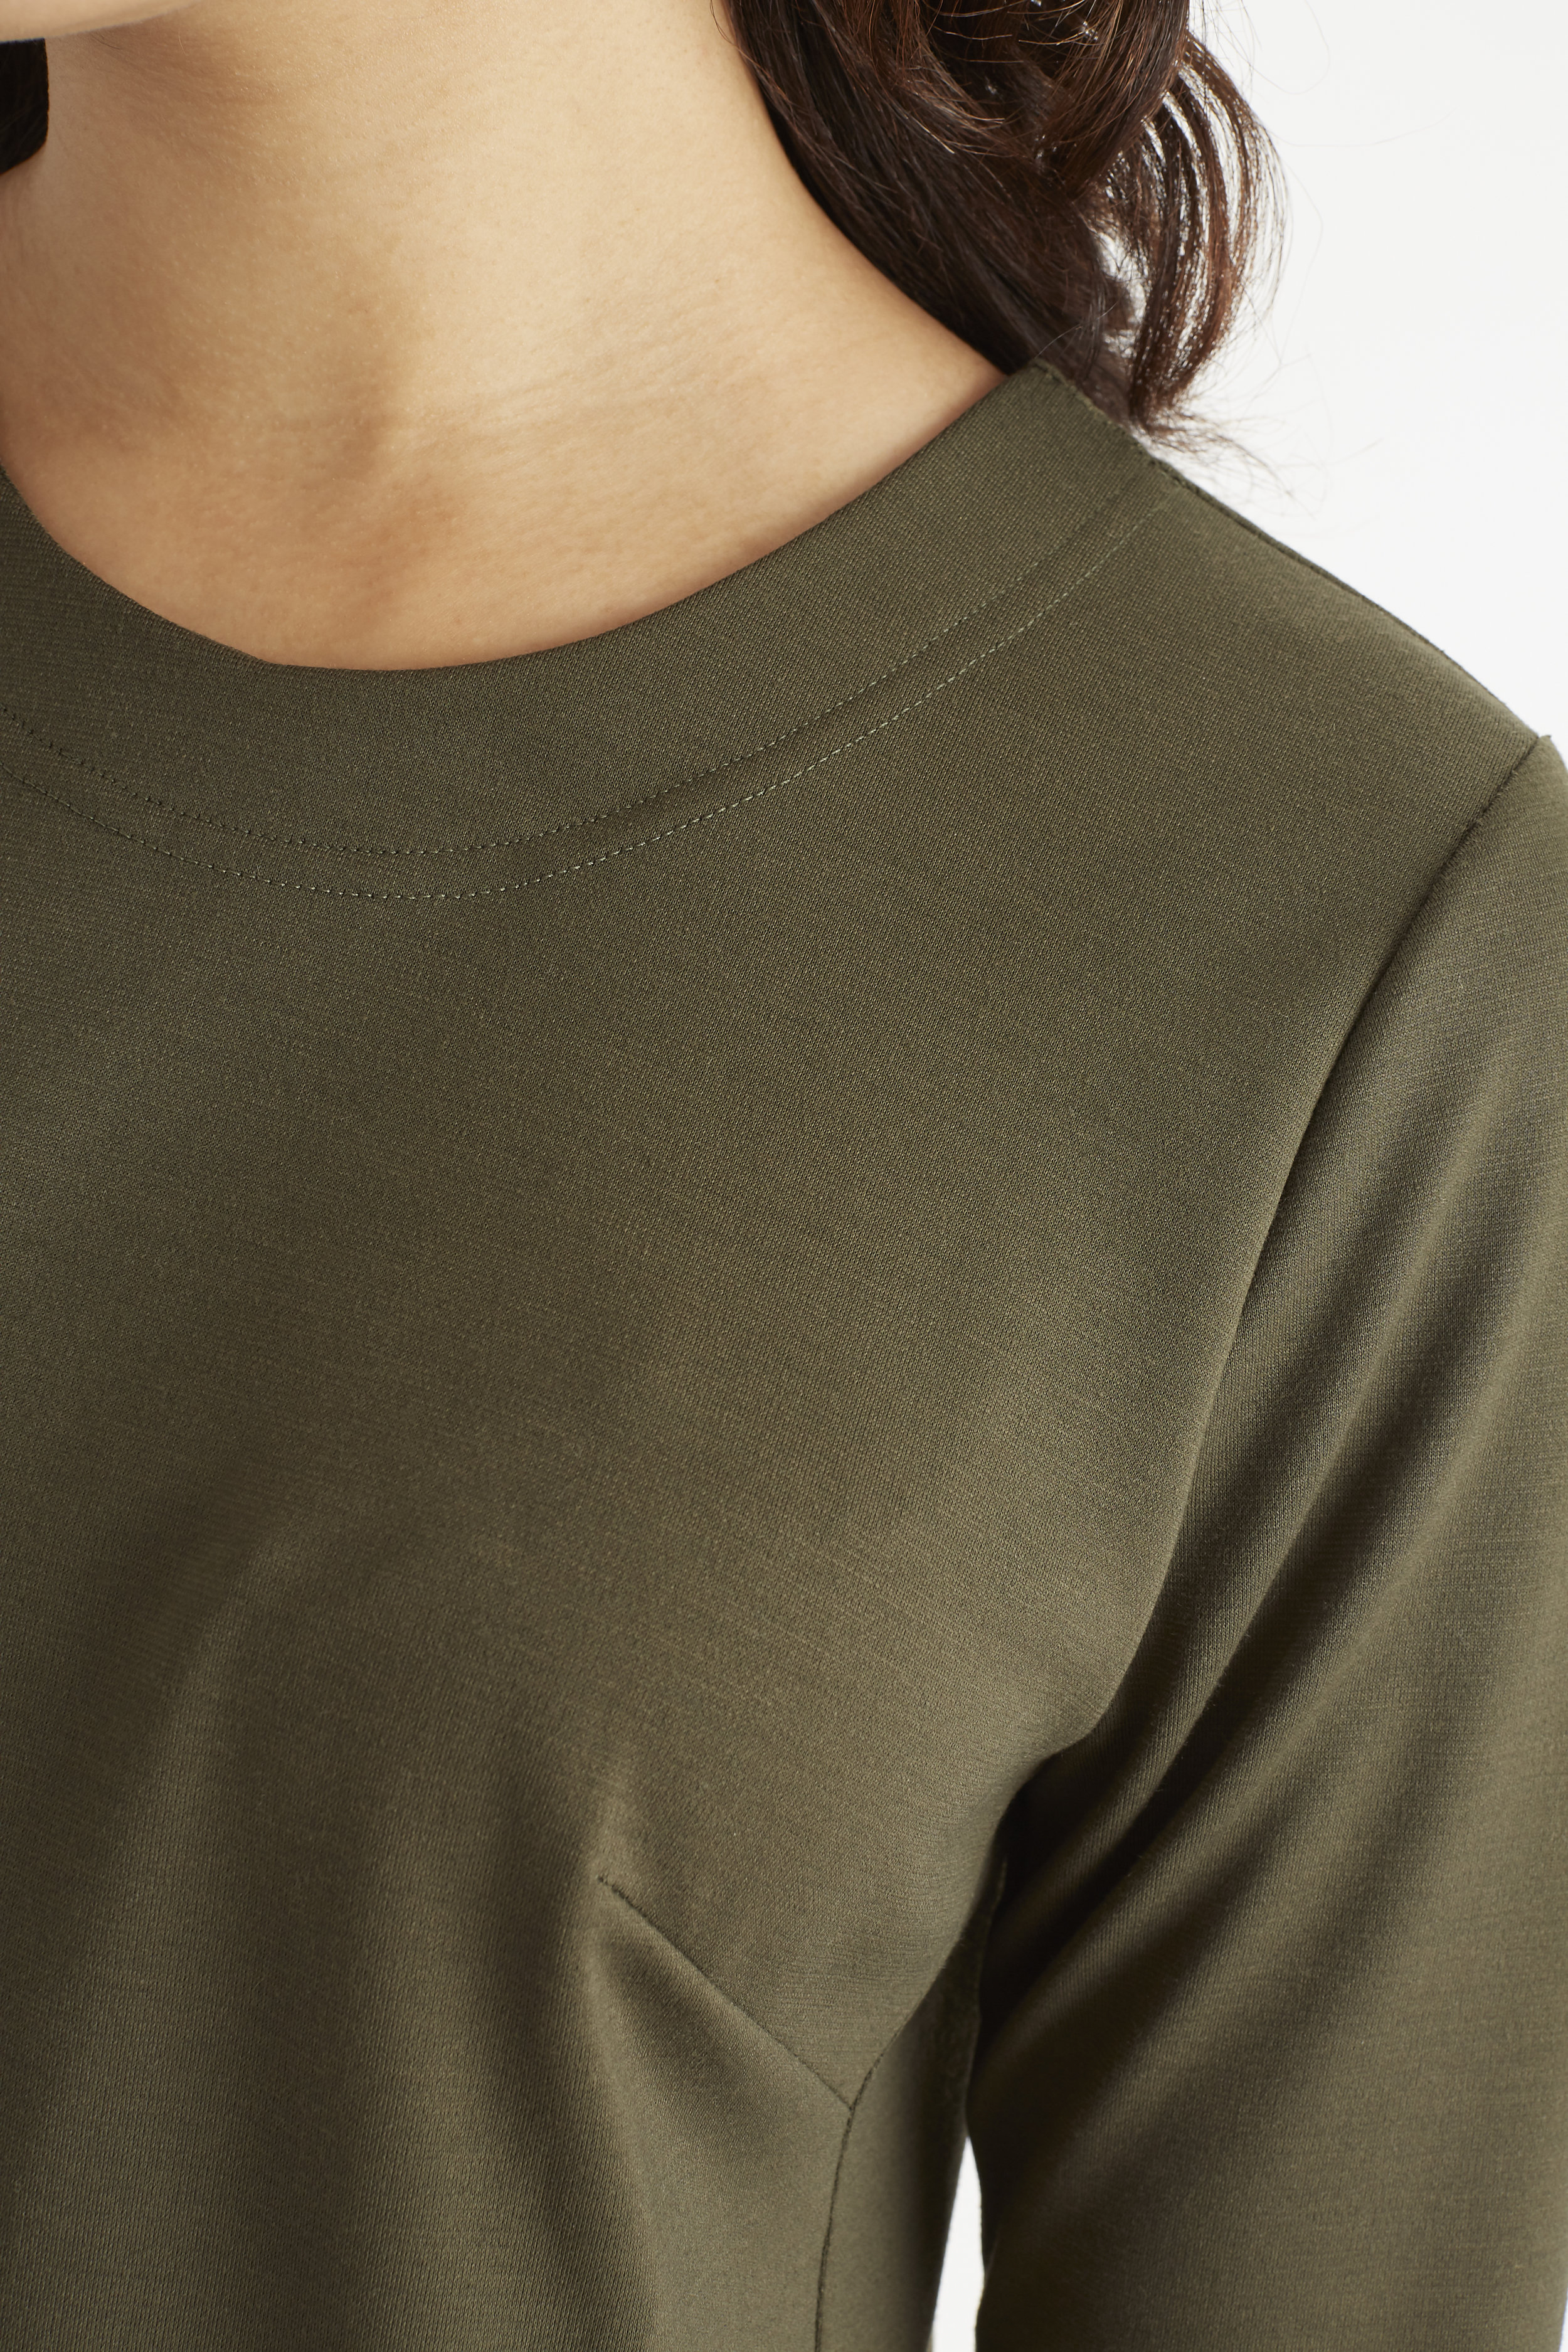 GREEN_NECK_DETAIL.jpg